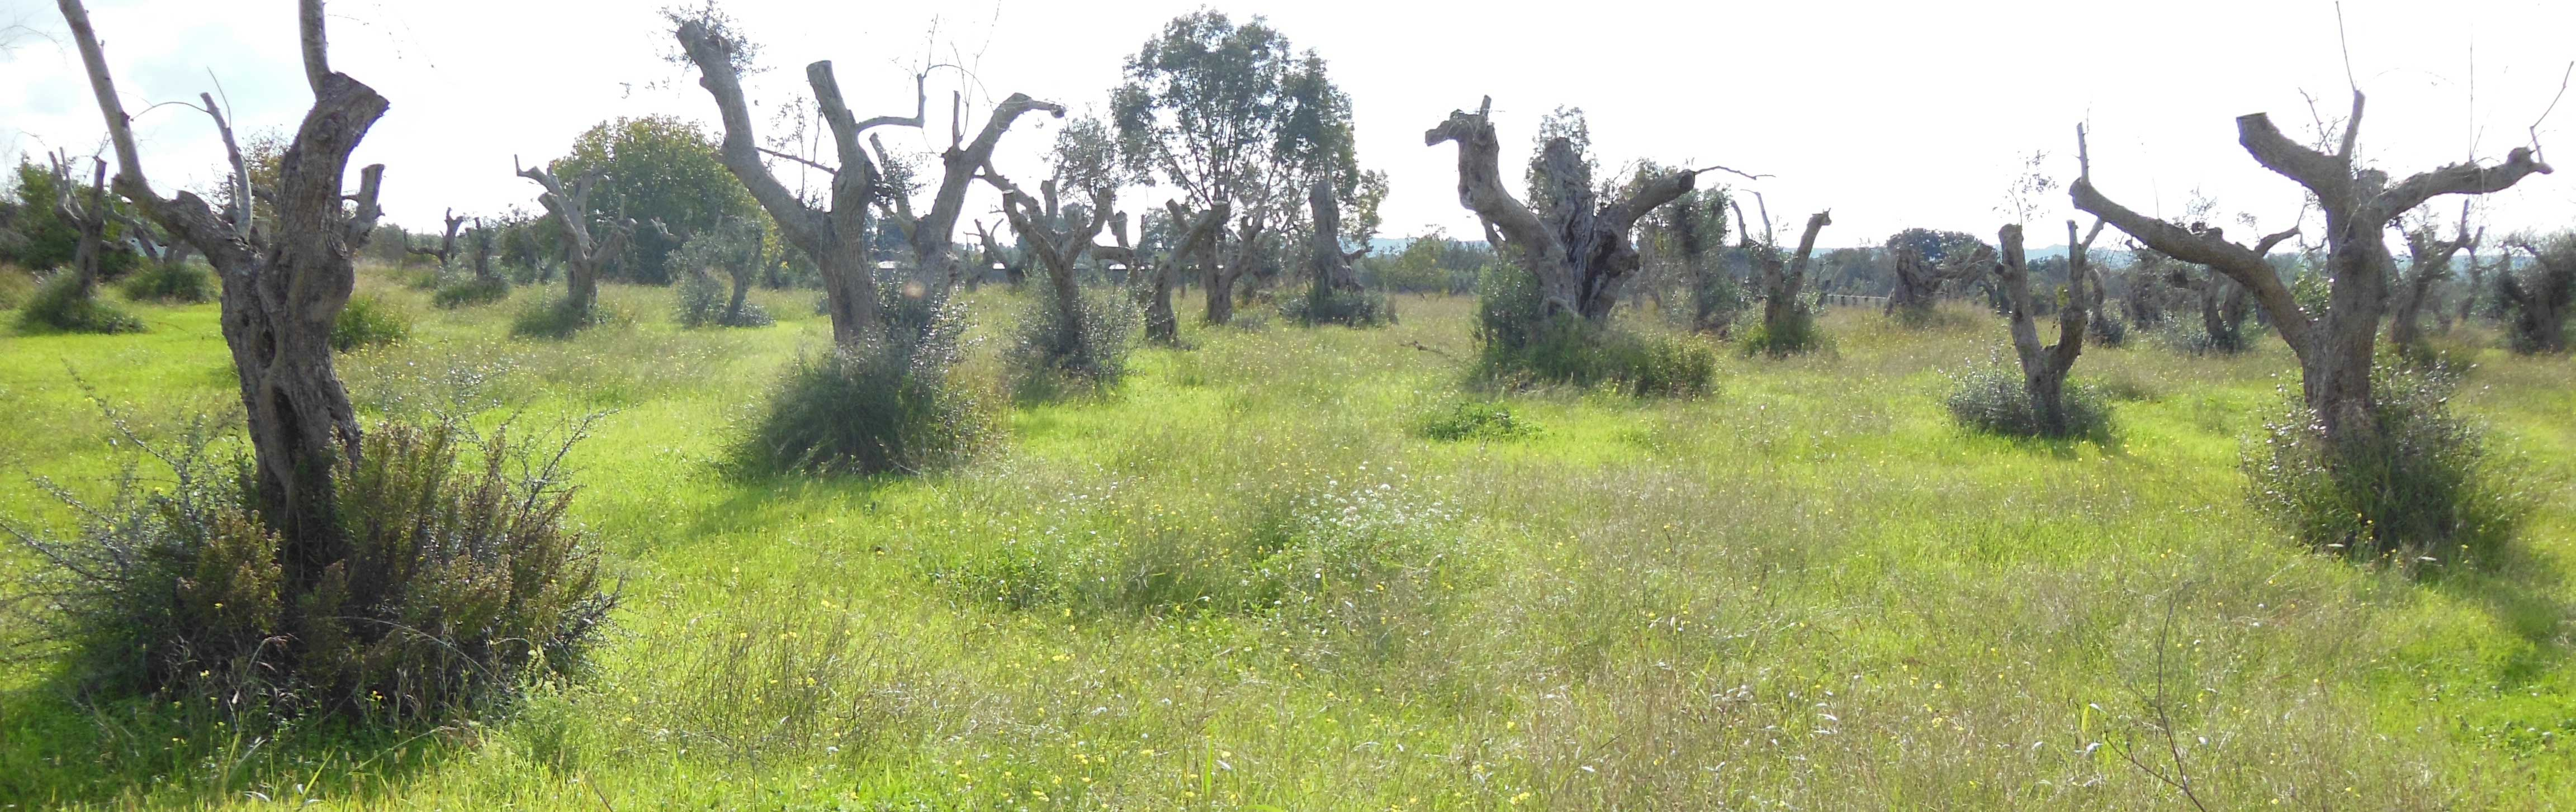 Olive trees in Apulia, Italy, after attempts to remove X. fastidiosa by pruning symptomatic branches.